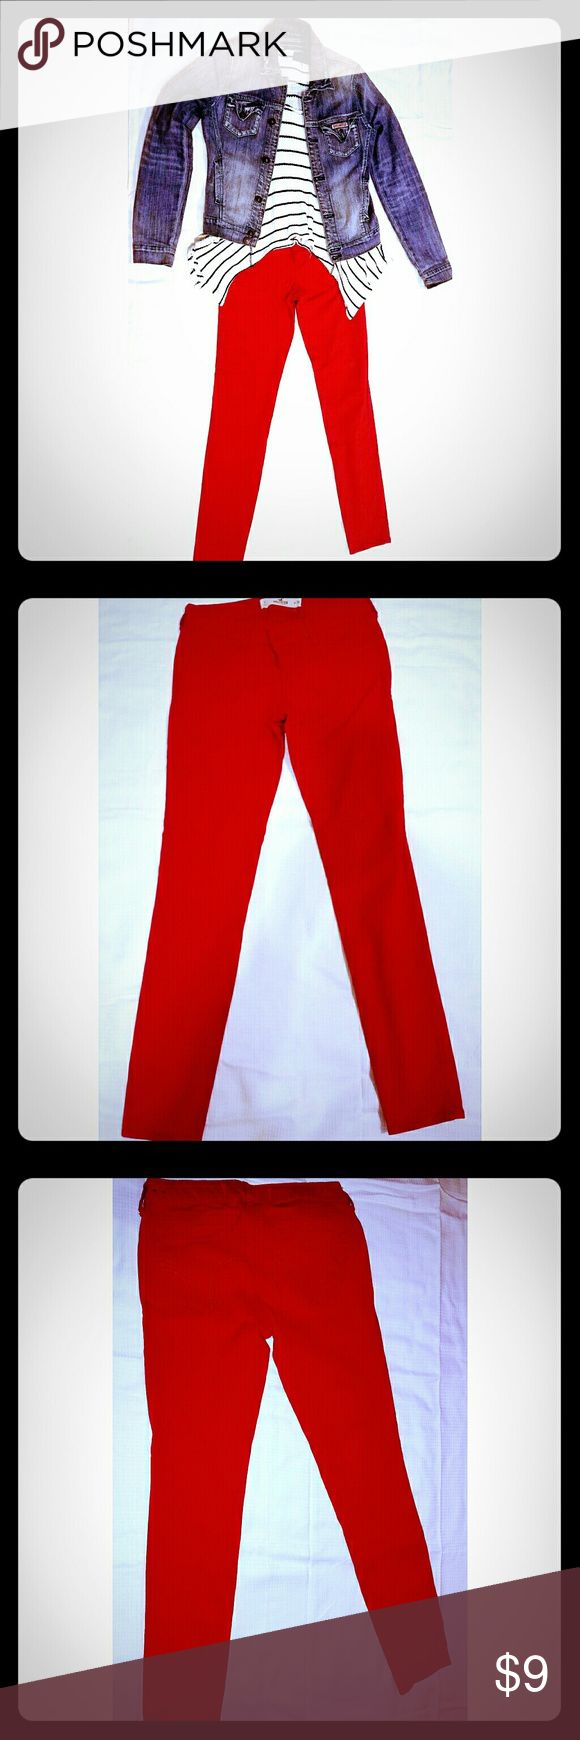 Red Hollister jeans Bright, engine red, Hollister jeans. Gently used twice. Size 3. *** SMOKE AND PET FREE HOME *** Hollister Pants Skinny